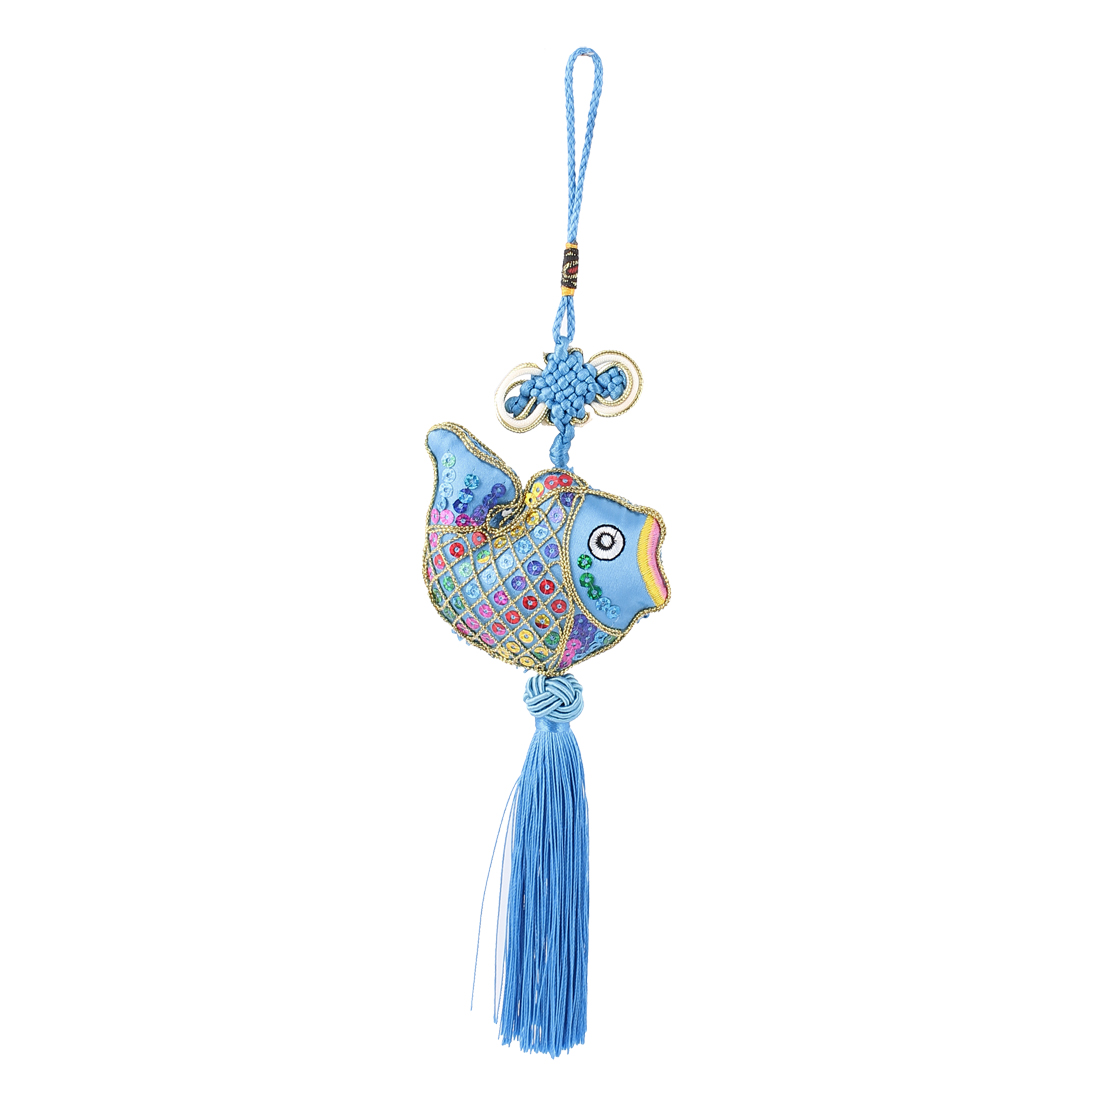 Knitted Chinese Knot Tassel Hanging Decoration Blue for Auto Car